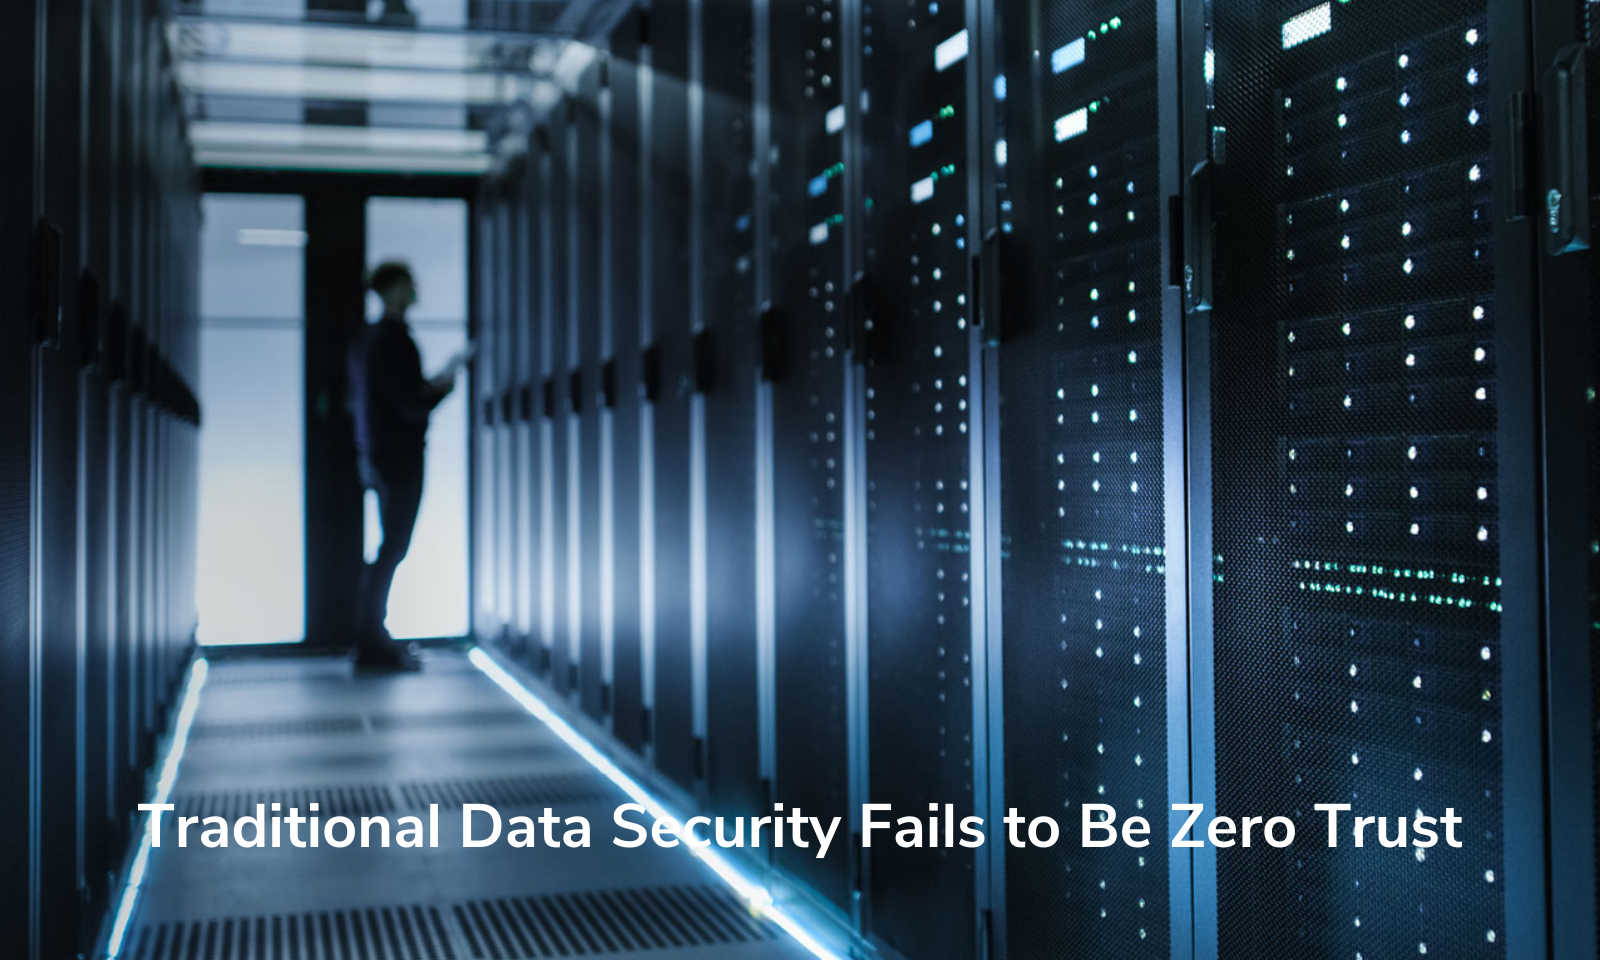 Traditional Data Security Fails to Be Zero Trust